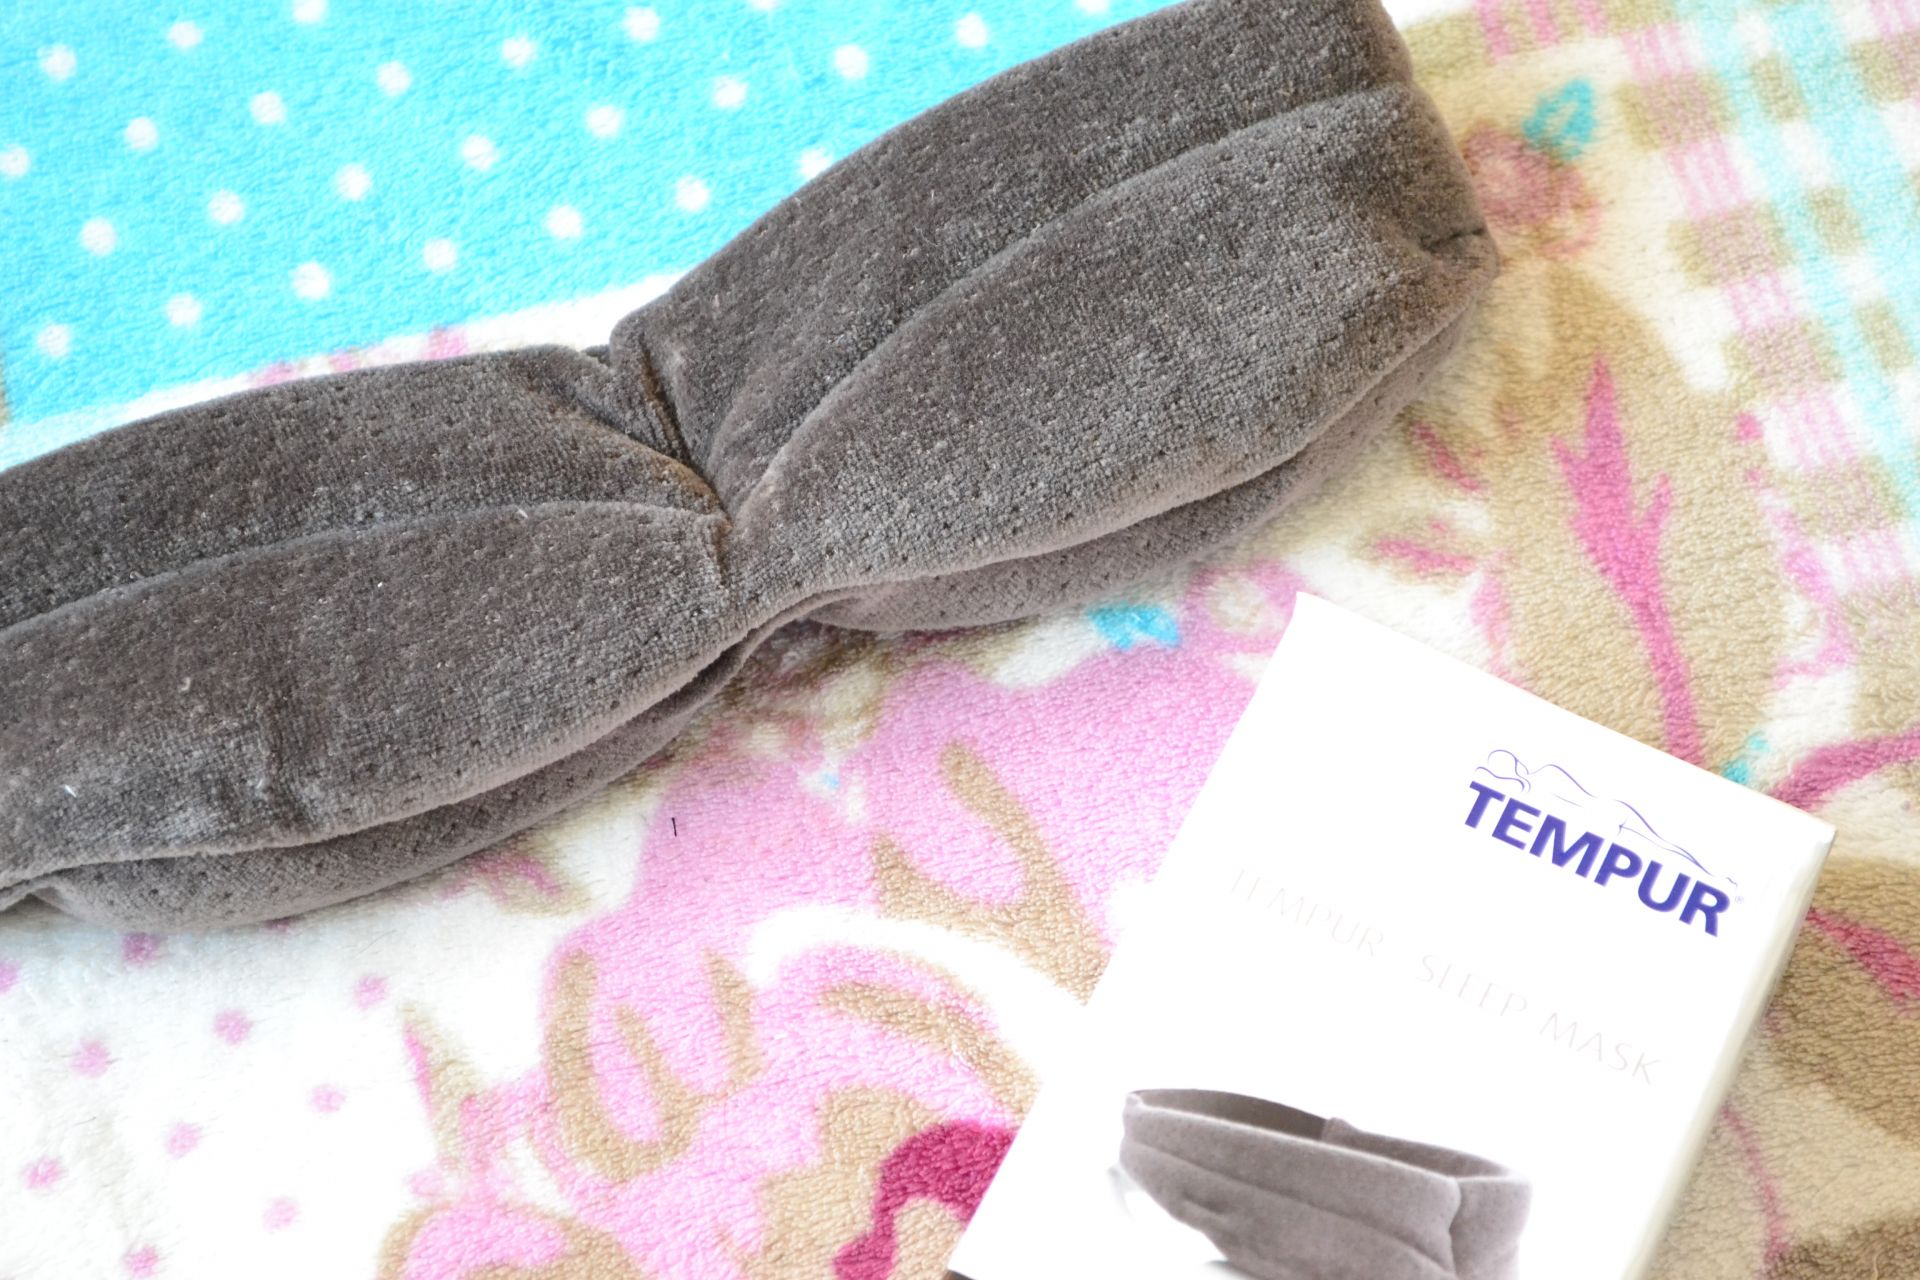 tempur-eye-mask-review